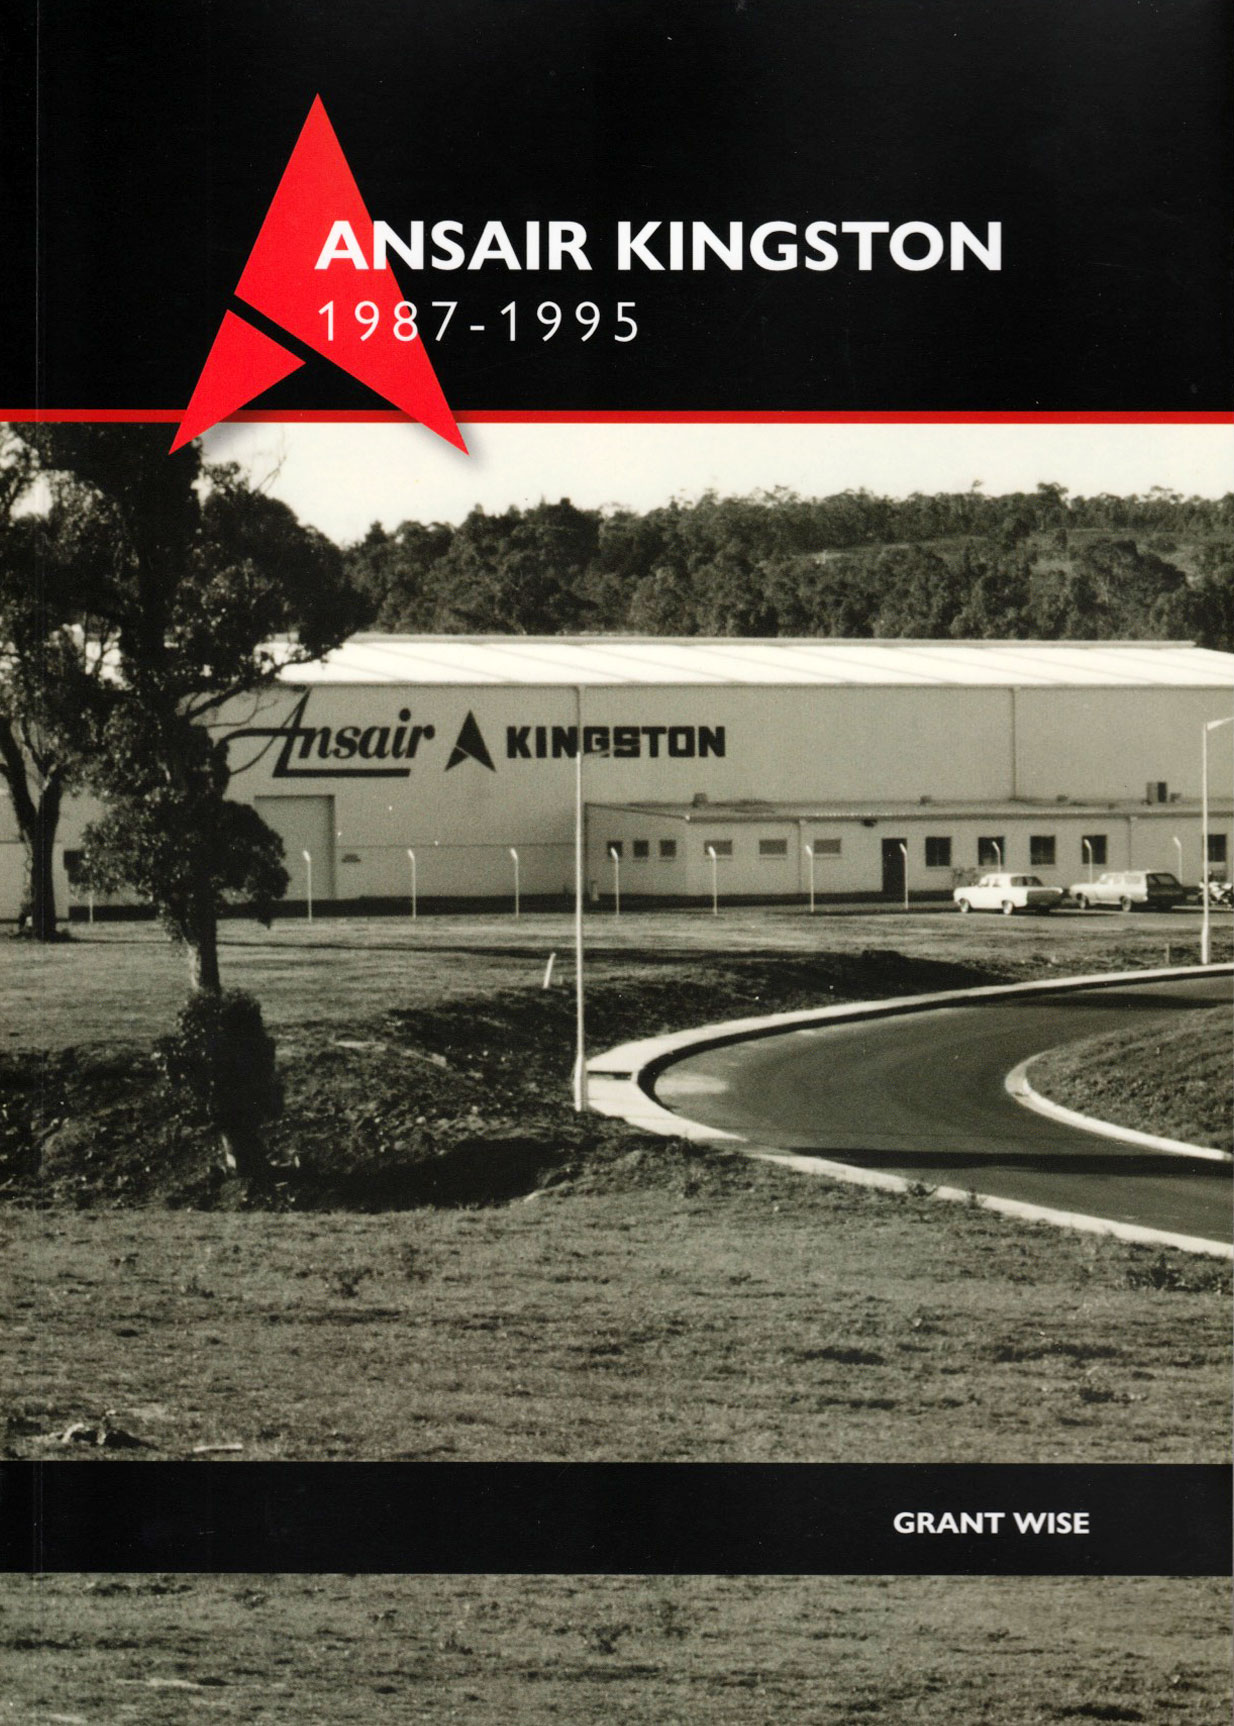 Ansair Kingston